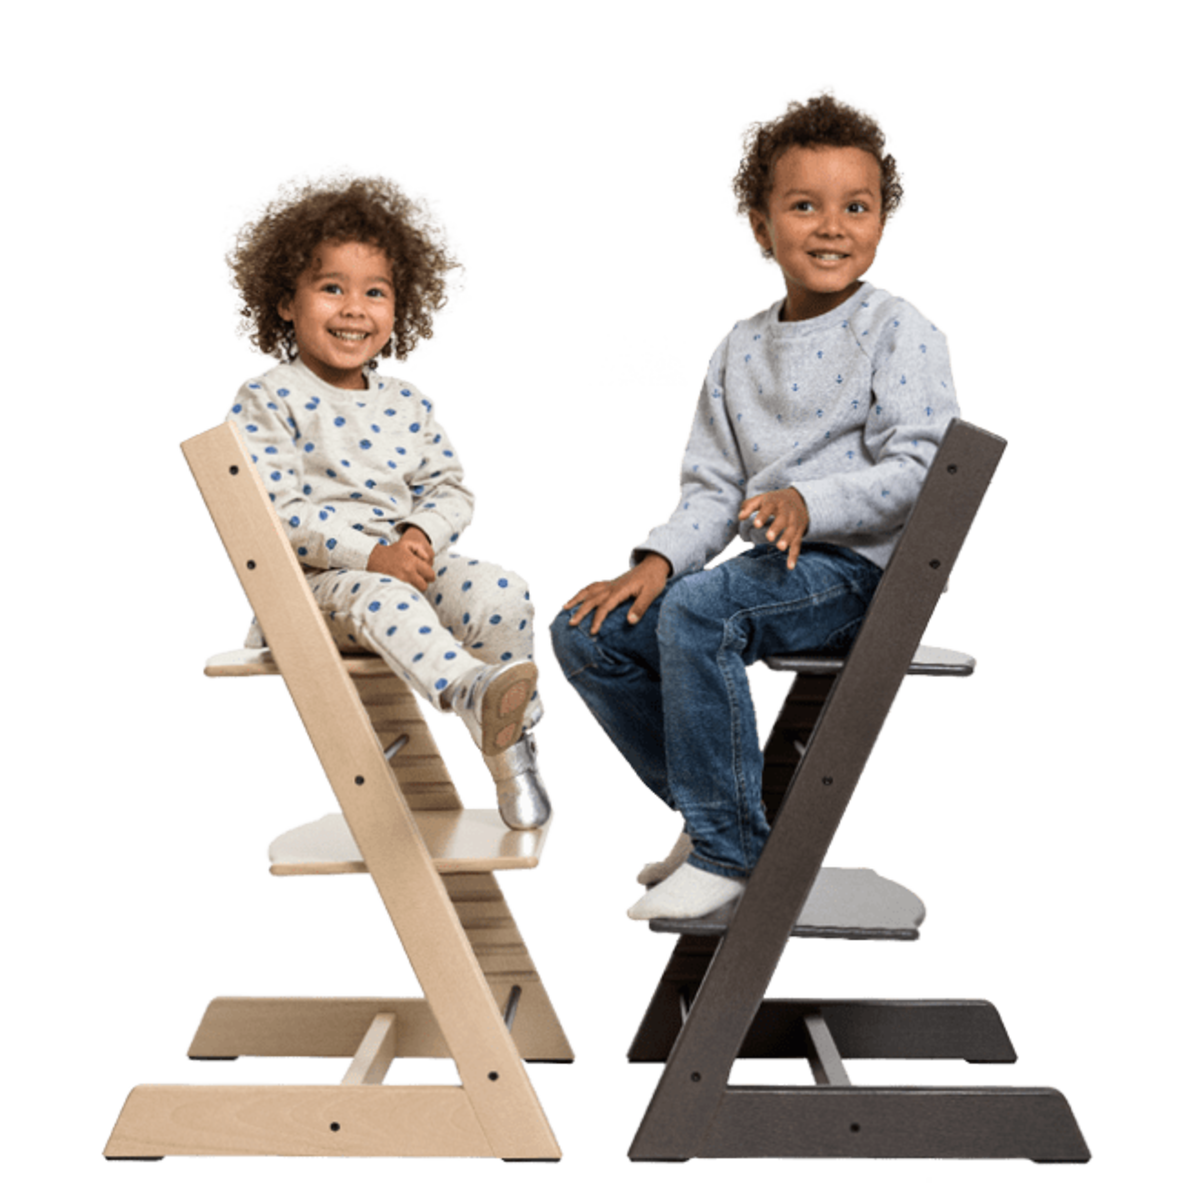 Children of all ages enjoy sitting on Tripp Trapp